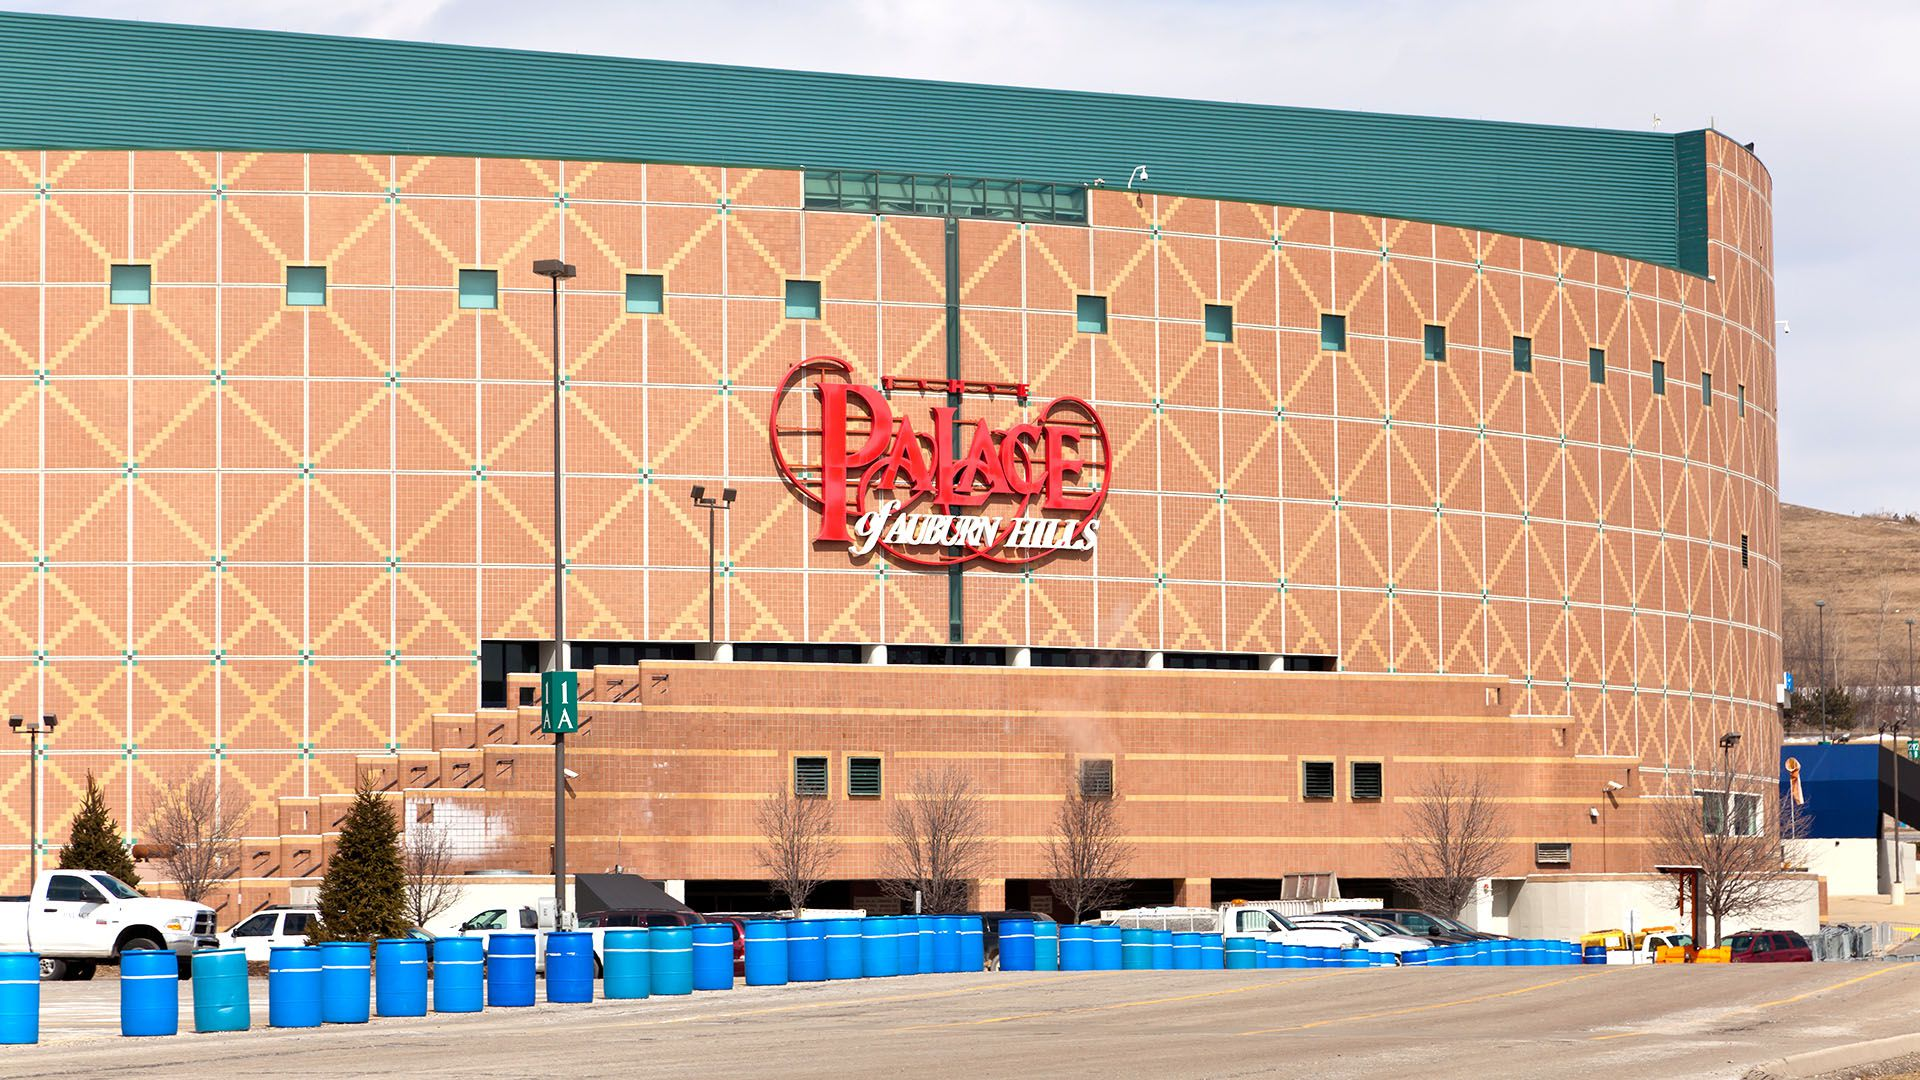 The Palace of Auburn Hills la antigua cancha de Detroit Pistons